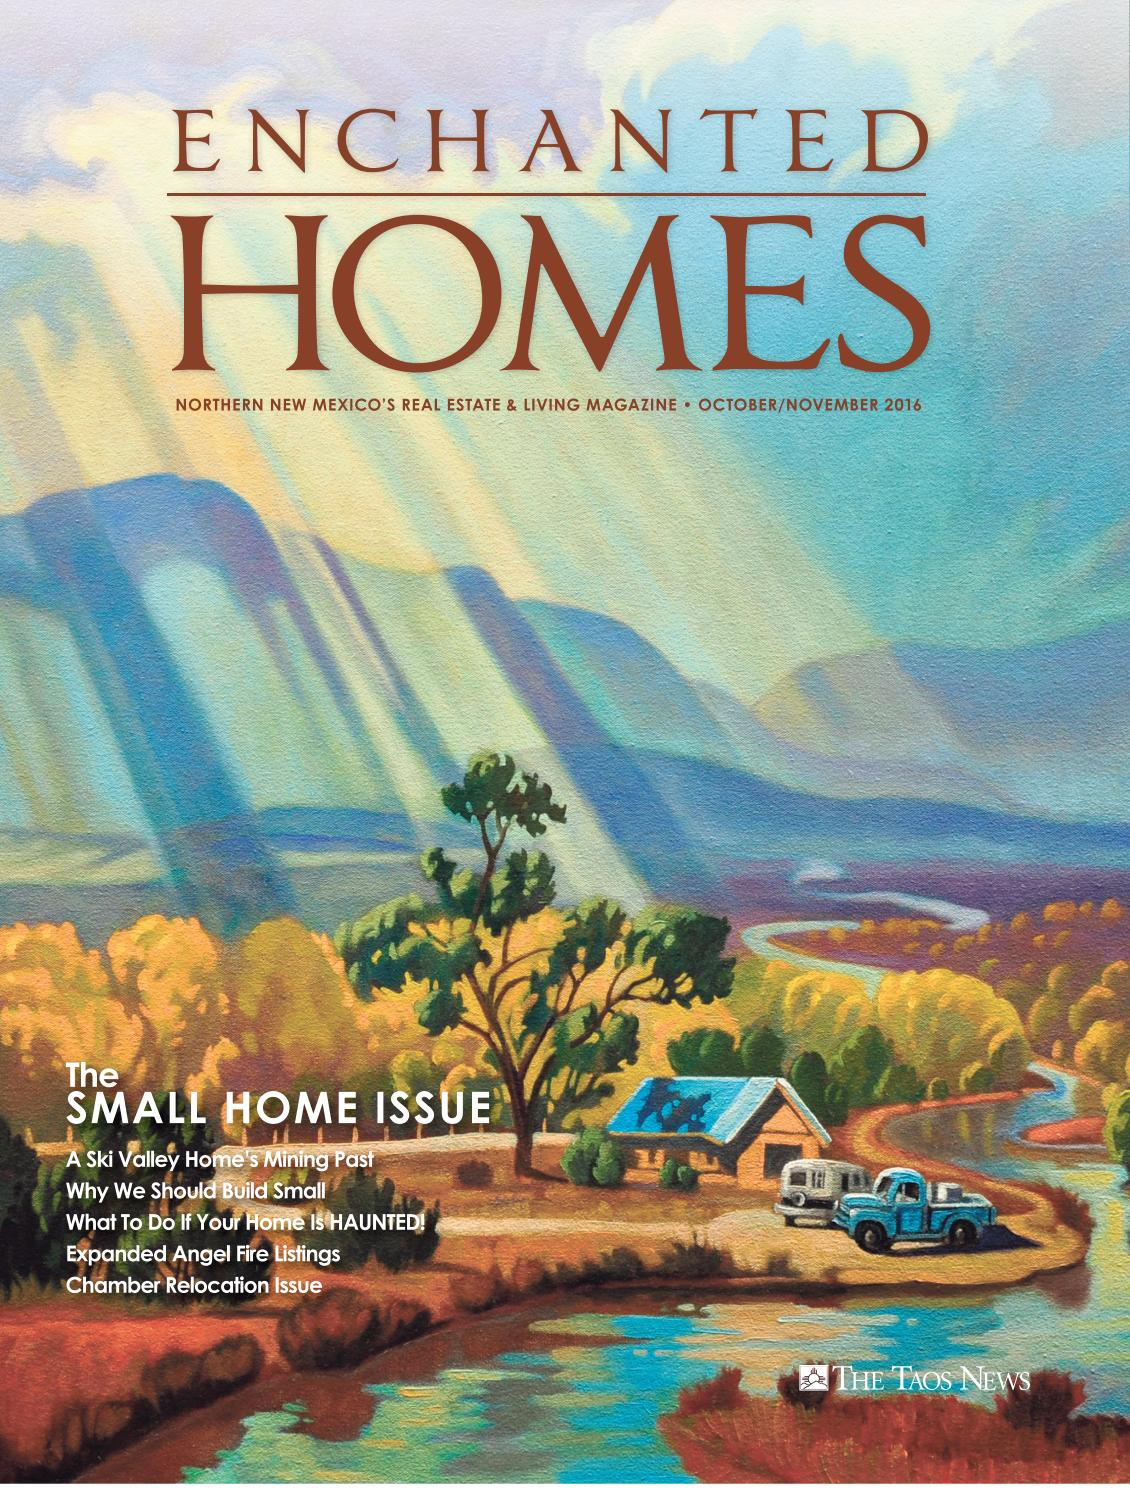 d7e253bfe837 Enchanted Homes  The Small Home Issue 2016 by The Taos News - issuu